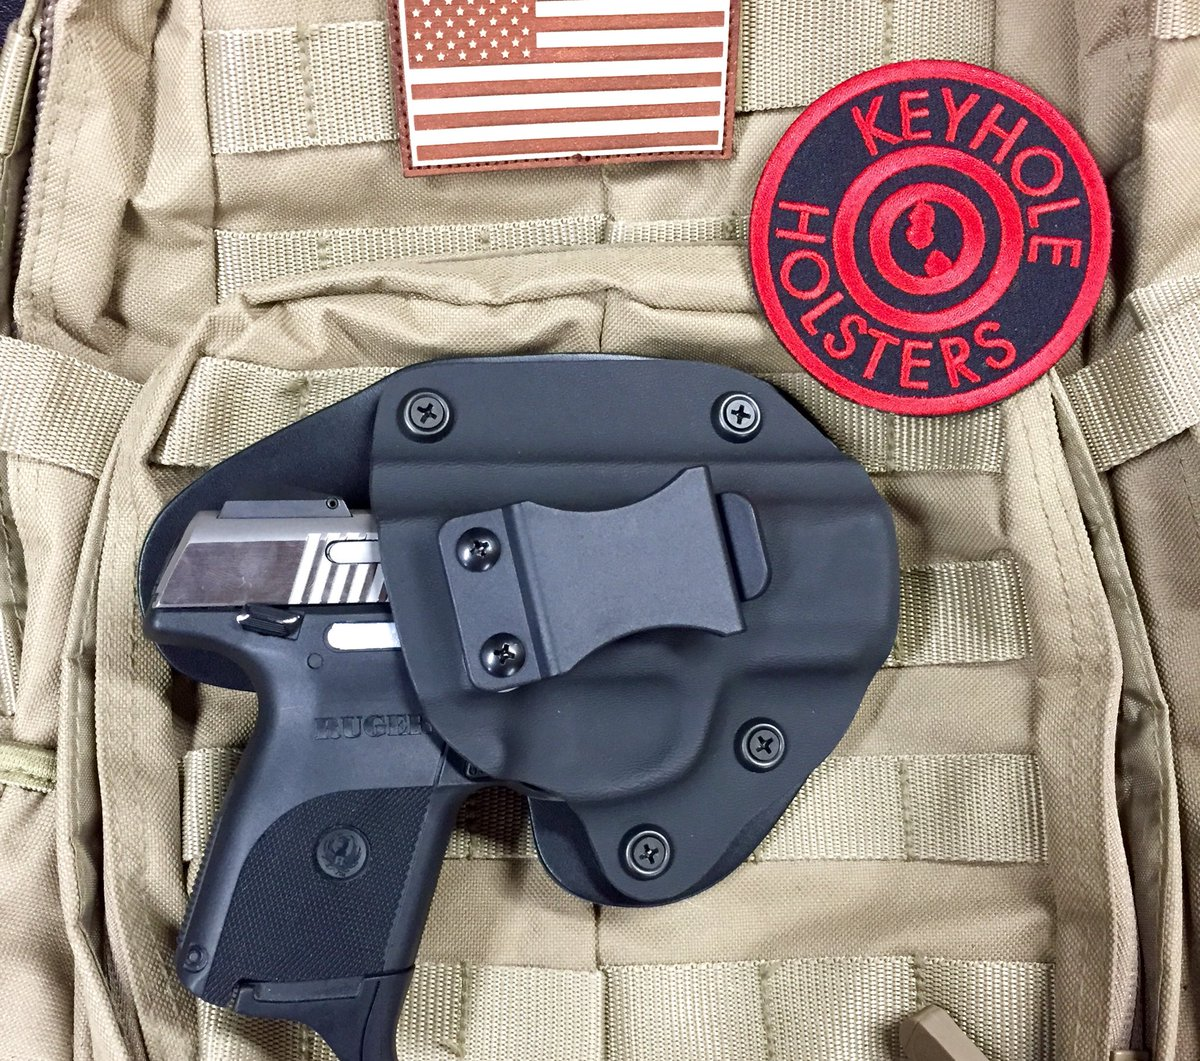 Keyhole Holsters on Twitter: